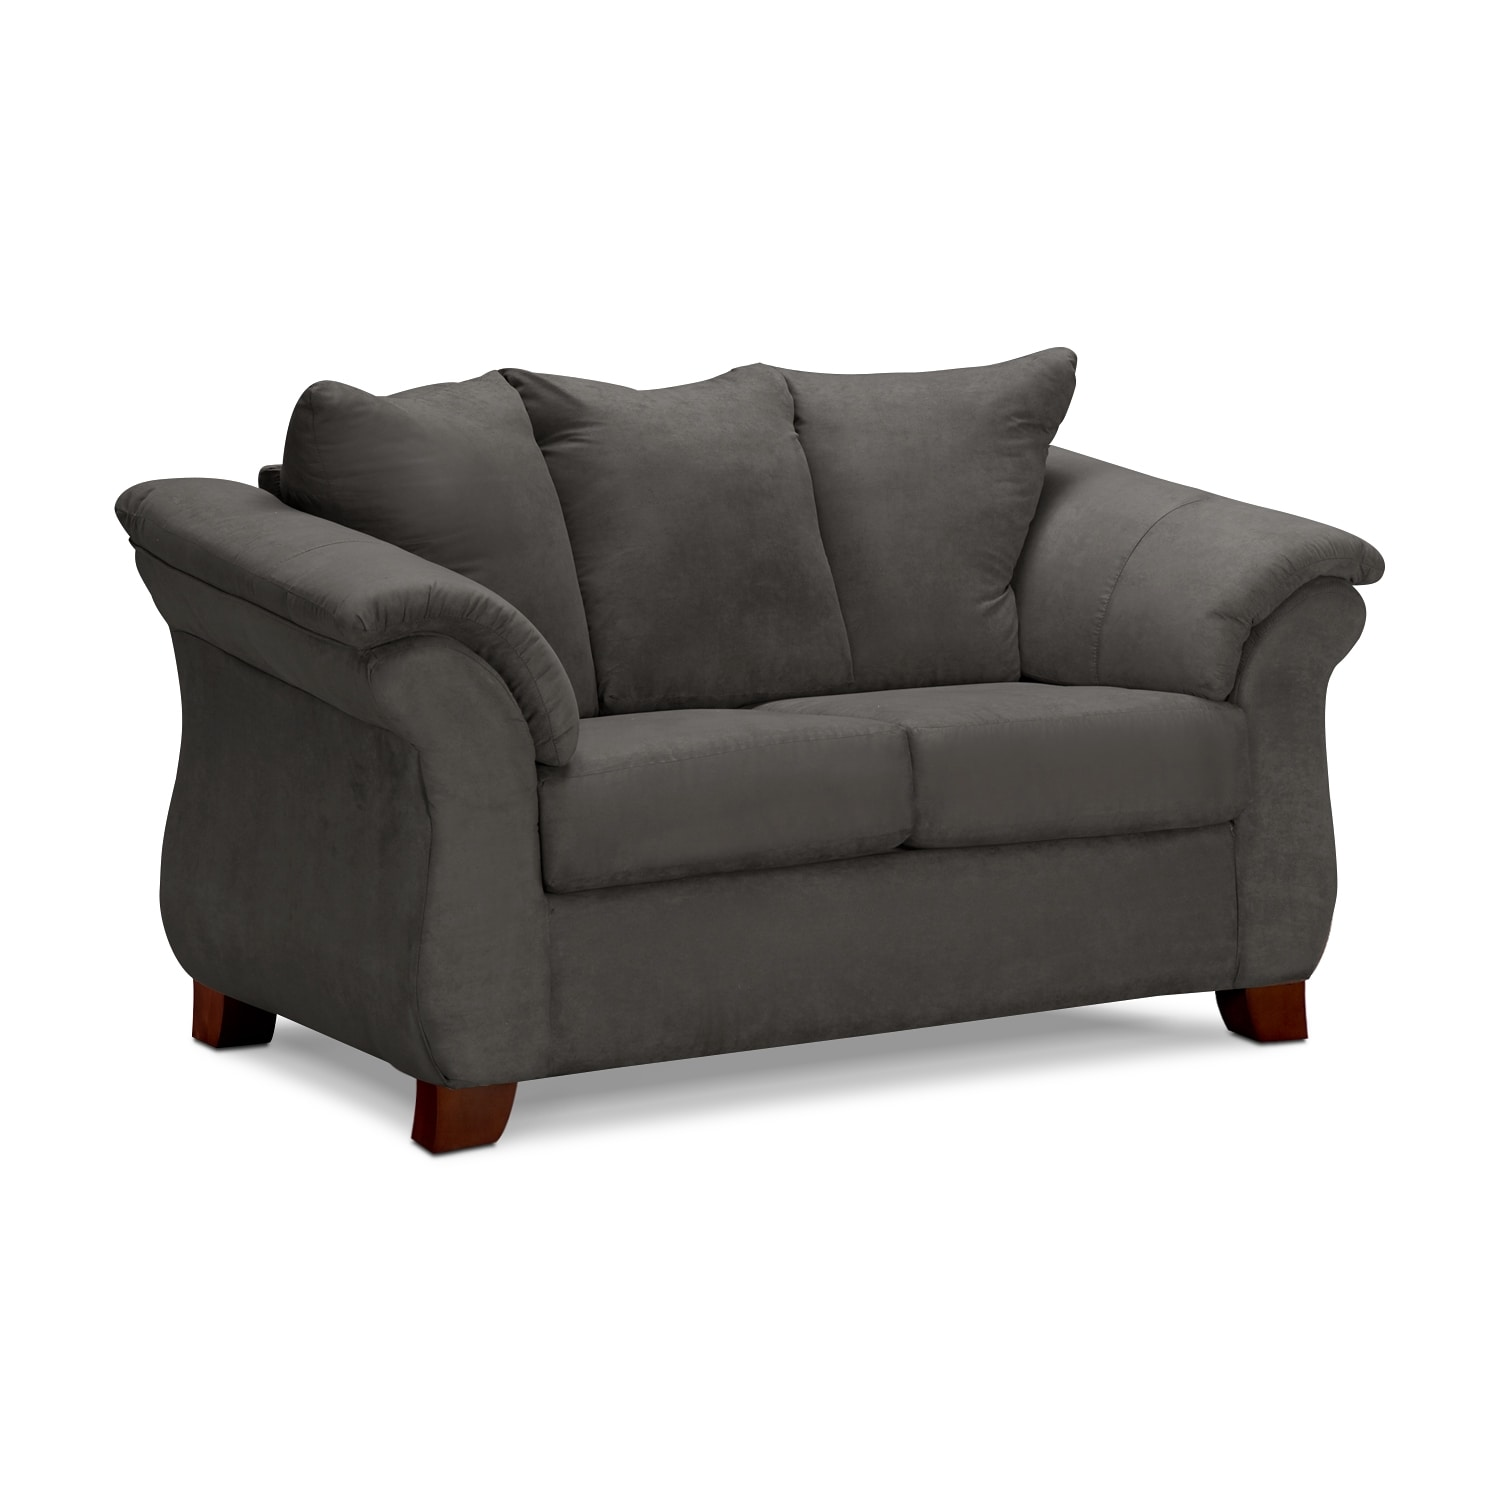 Living Room Furniture - Adrian Loveseat - Graphite